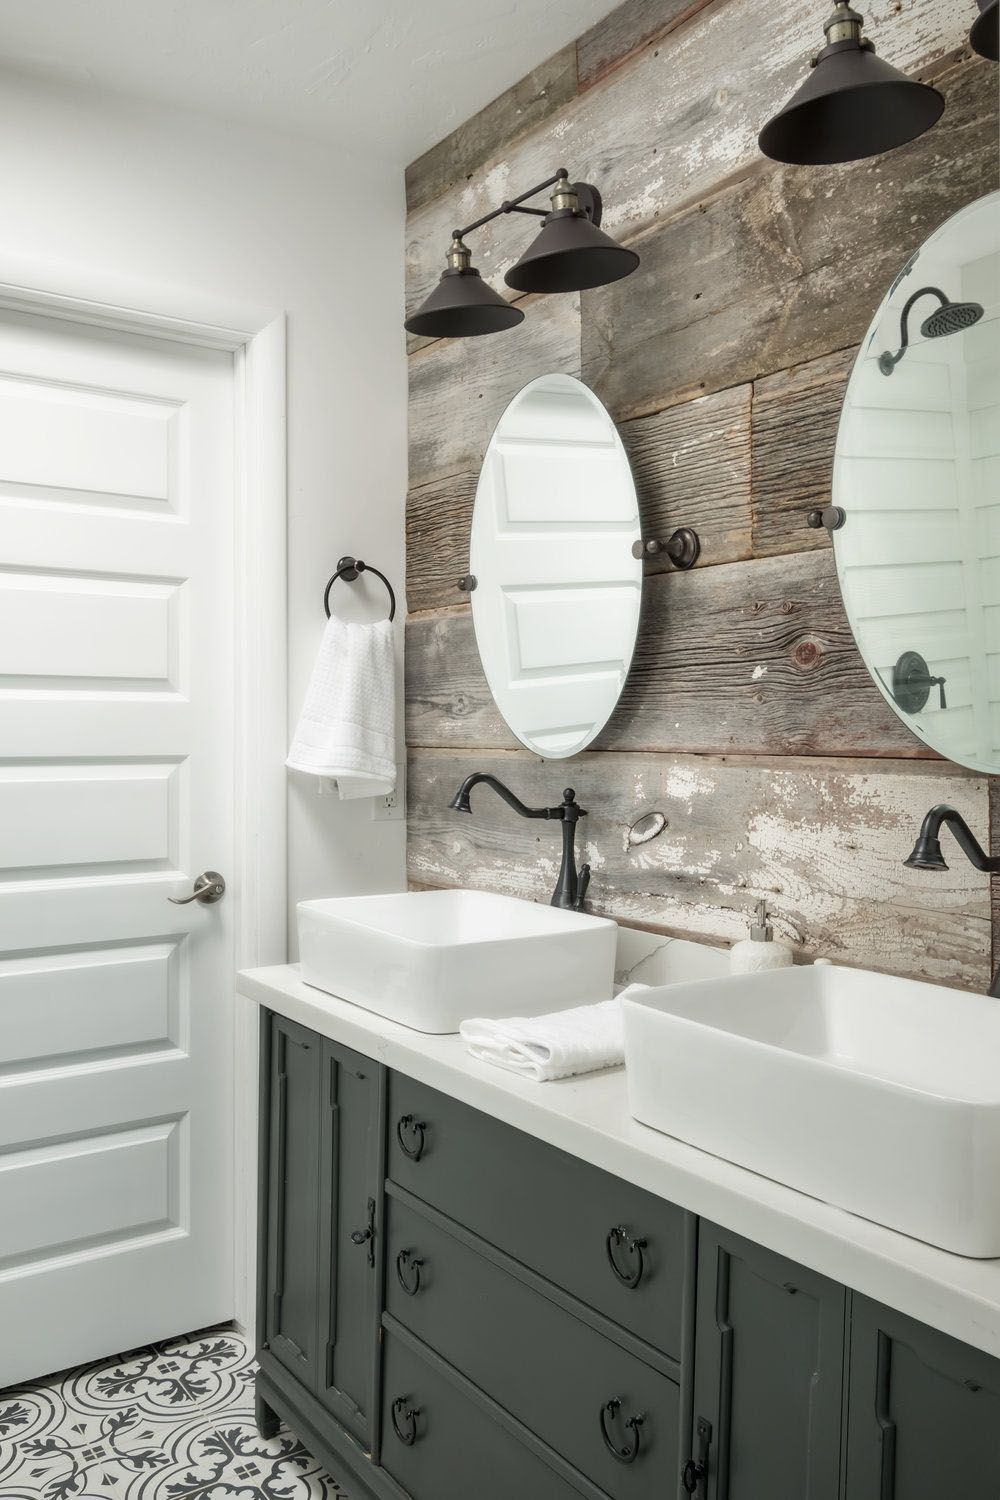 Bathroom Mirror Ideas To Reflect Your Style Bathroom Design Bathrooms Remodel Bathroom Mirror